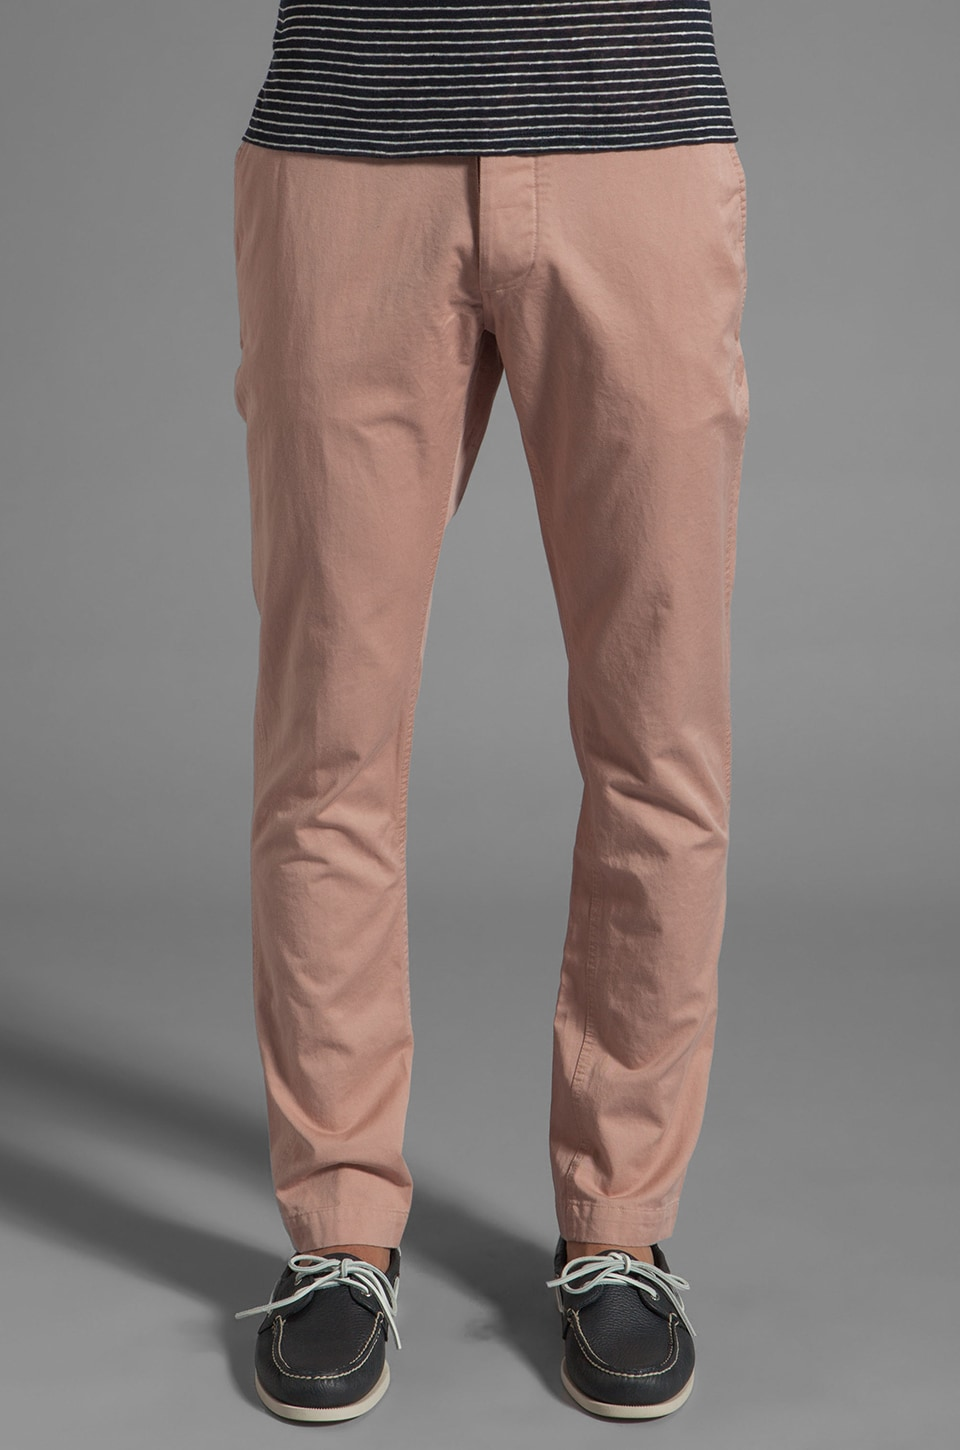 Shades of Grey by Micah Cohen Slim Fit Chino in Mauve Twill